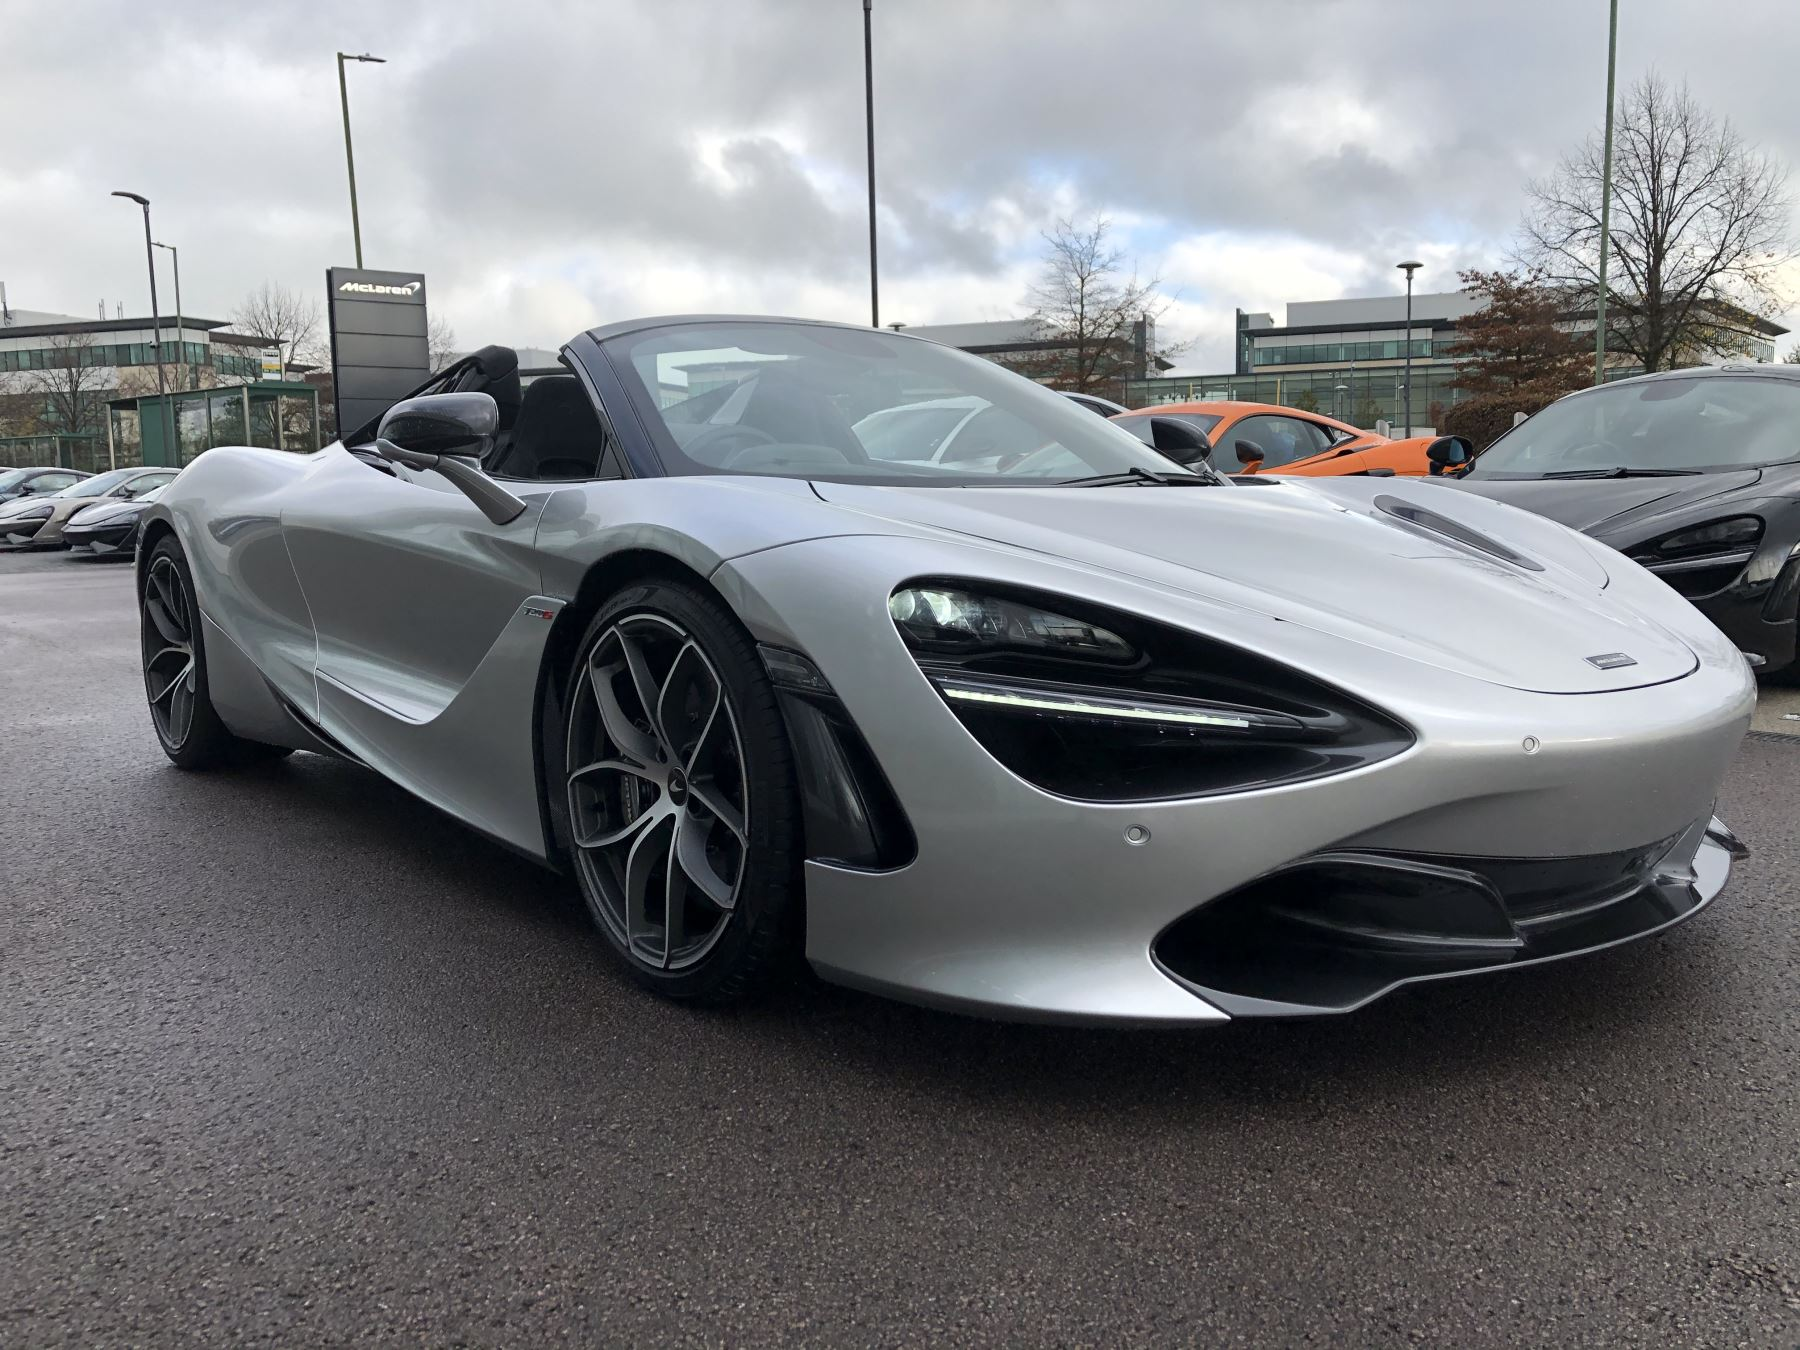 McLaren 720S Spider V8 Performance 2dr SSG Auto 4.0 Automatic Convertible (2021)